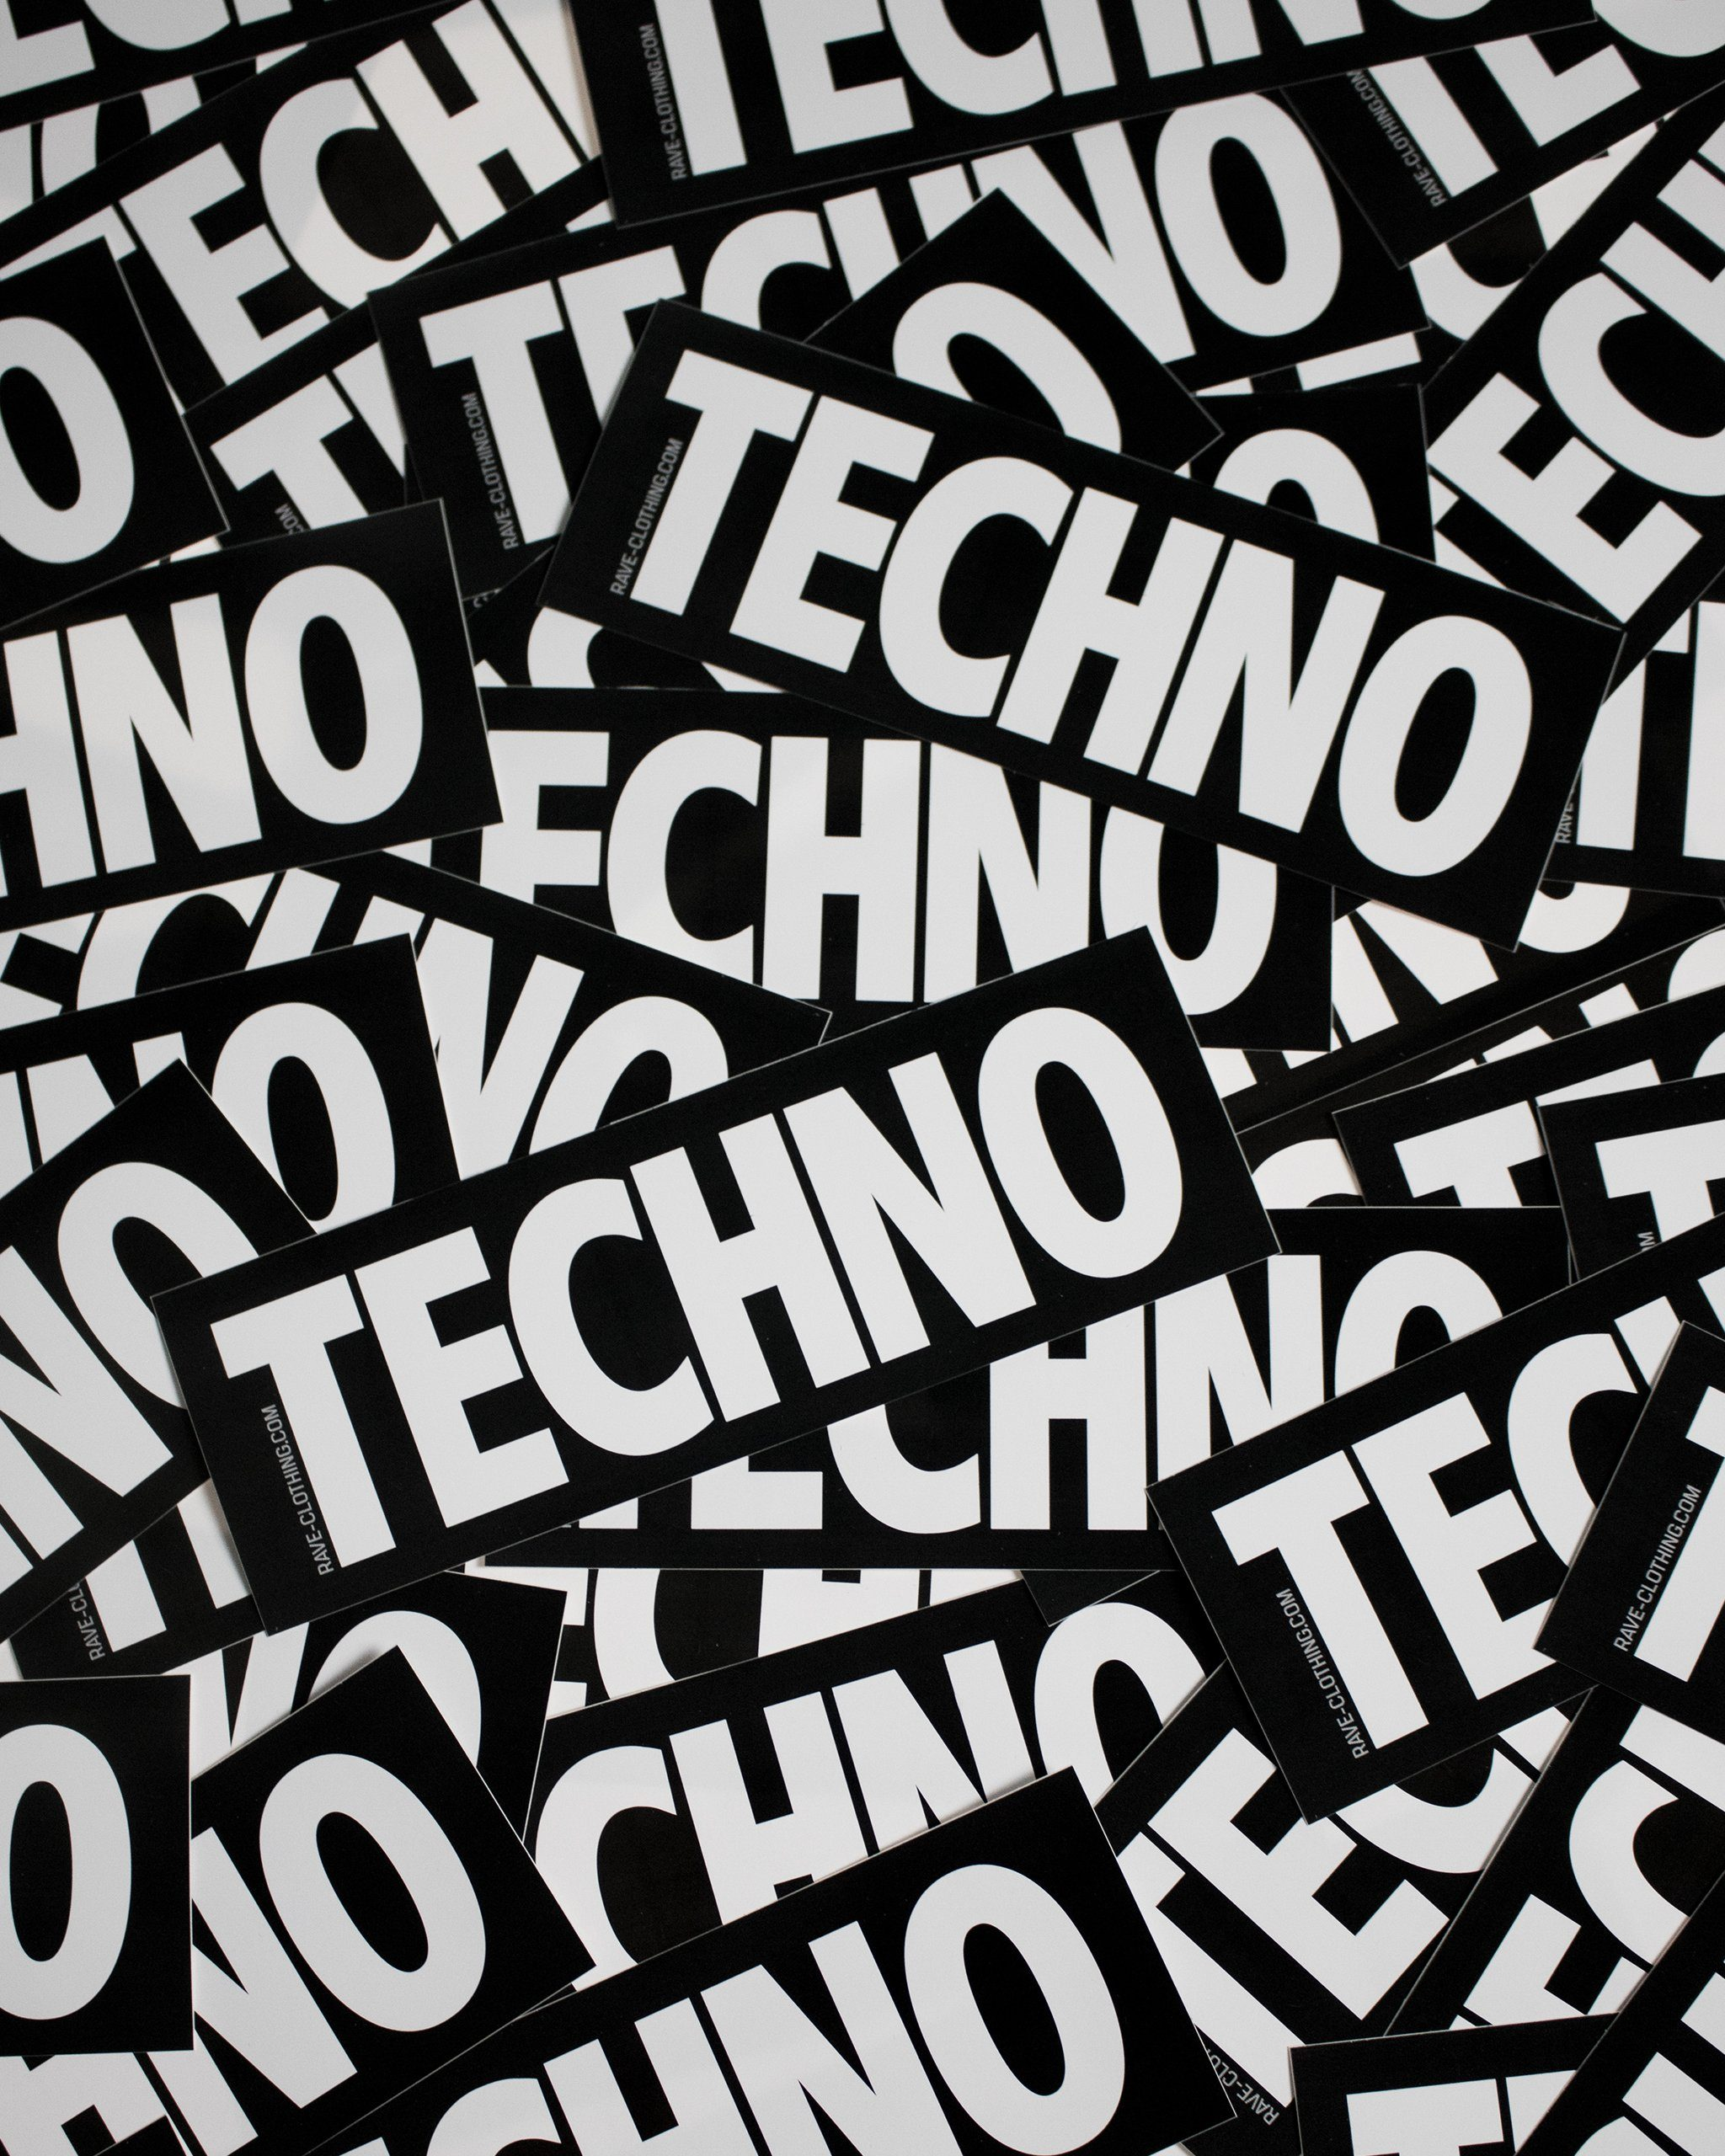 Techno sticker from RAVE Clothing